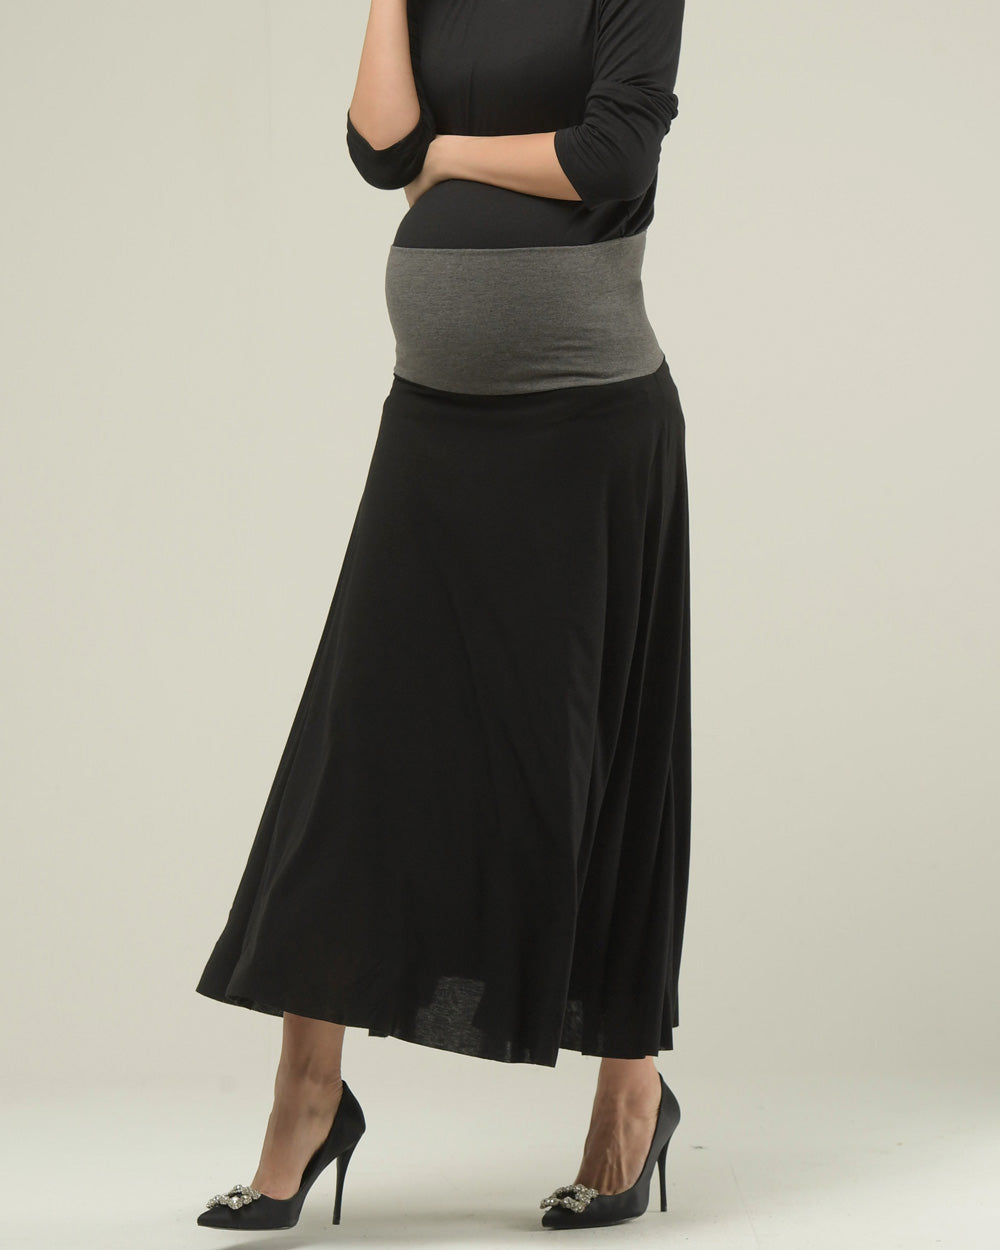 ESSENTIAL 2-WAY SOFT JERSEY SKIRT